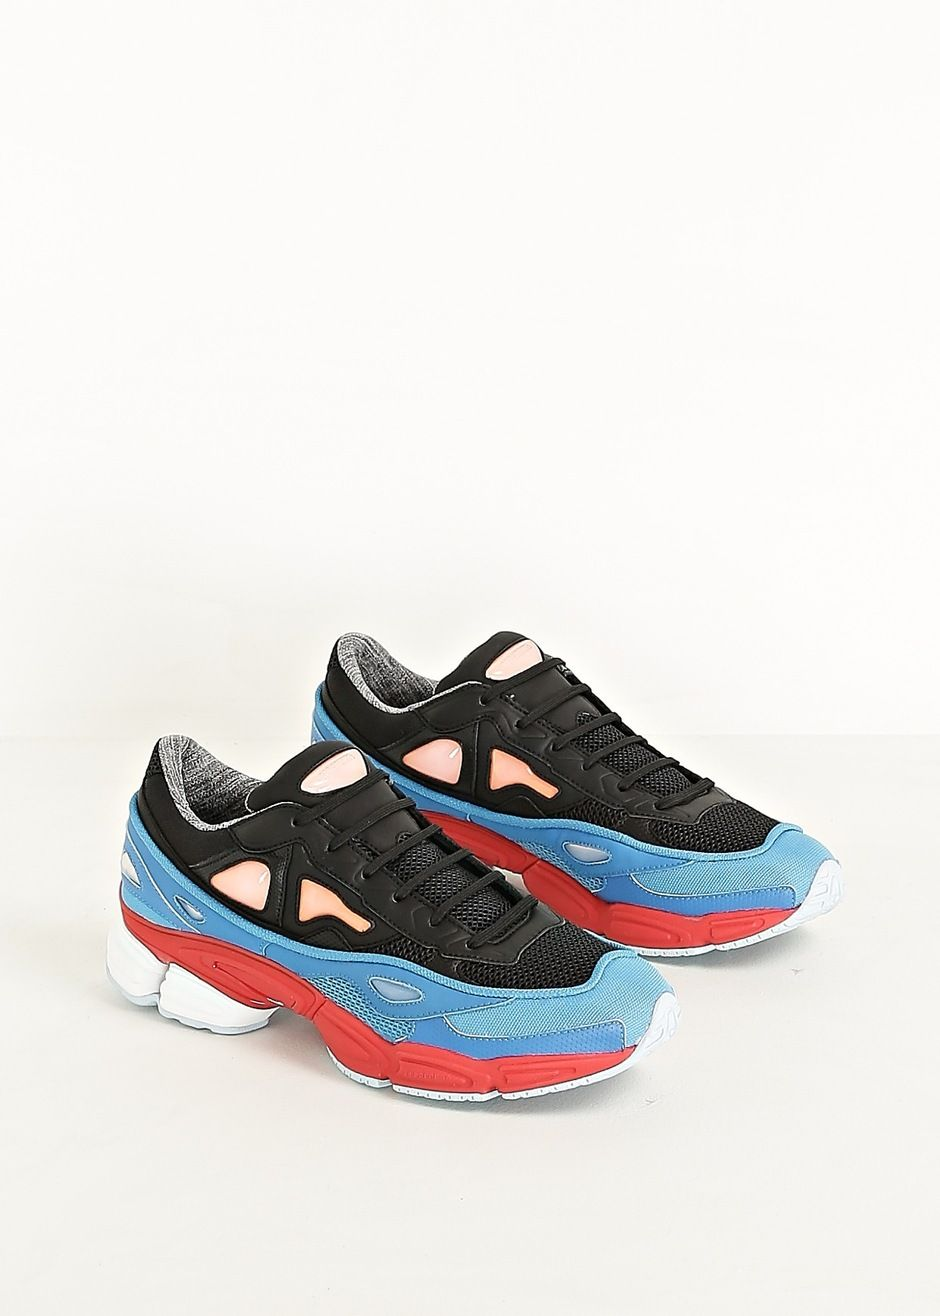 Adidas Raf Simons Ozweego 2 Sneaker (Black / Red / Lucky / Orange)